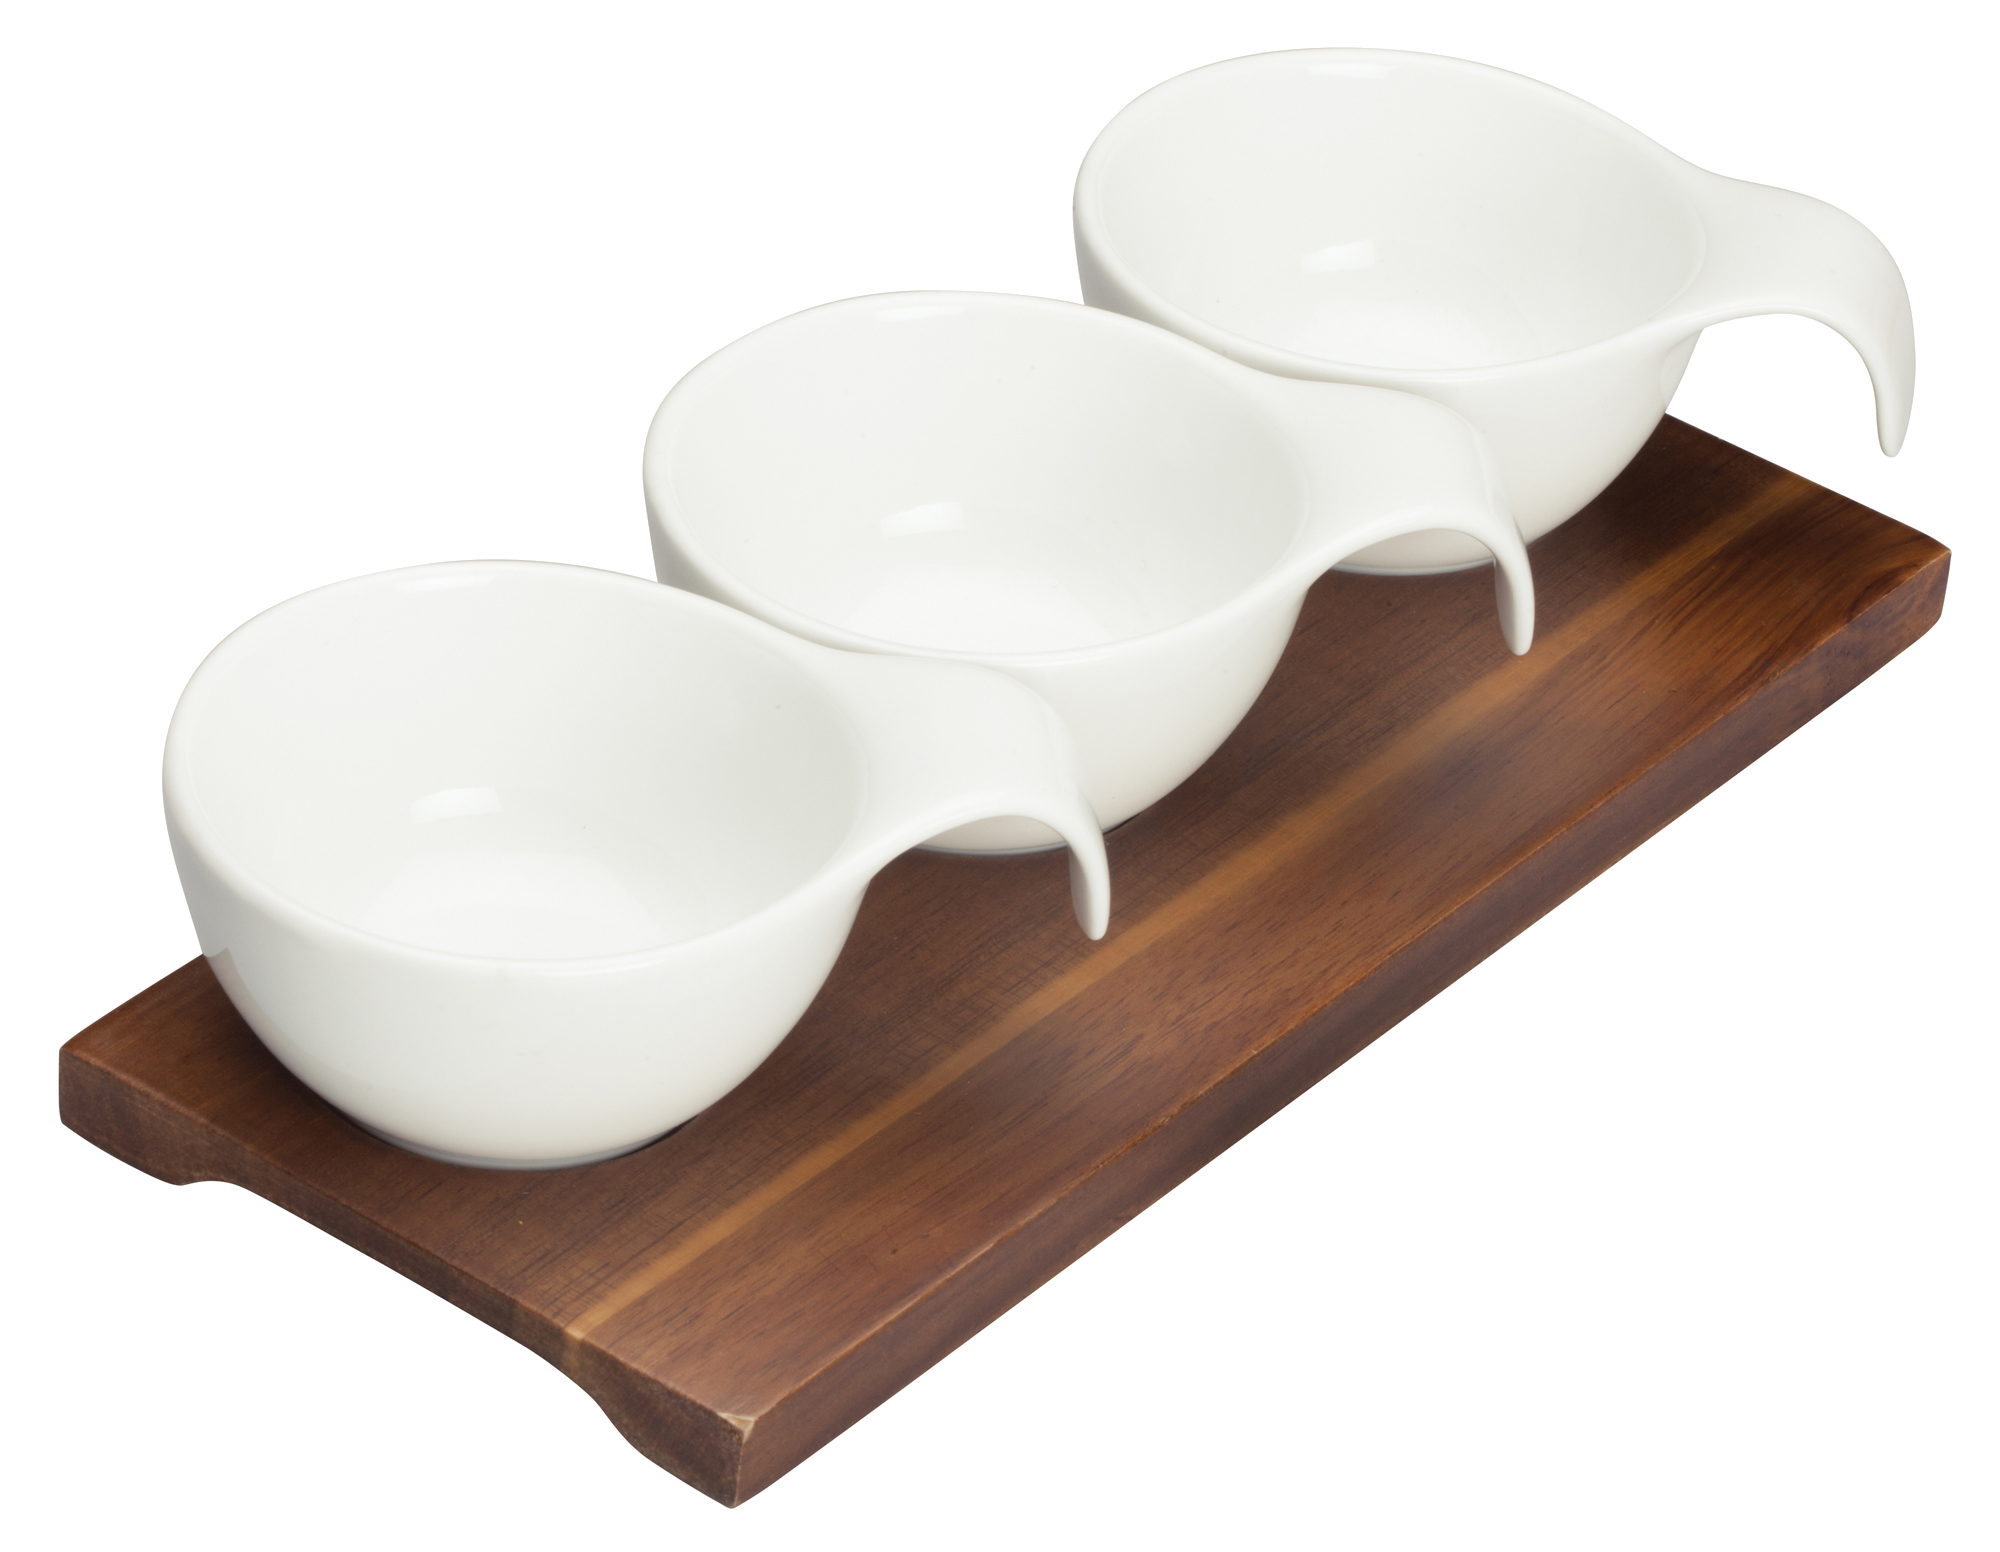 Winco WDP015-102 bowl set